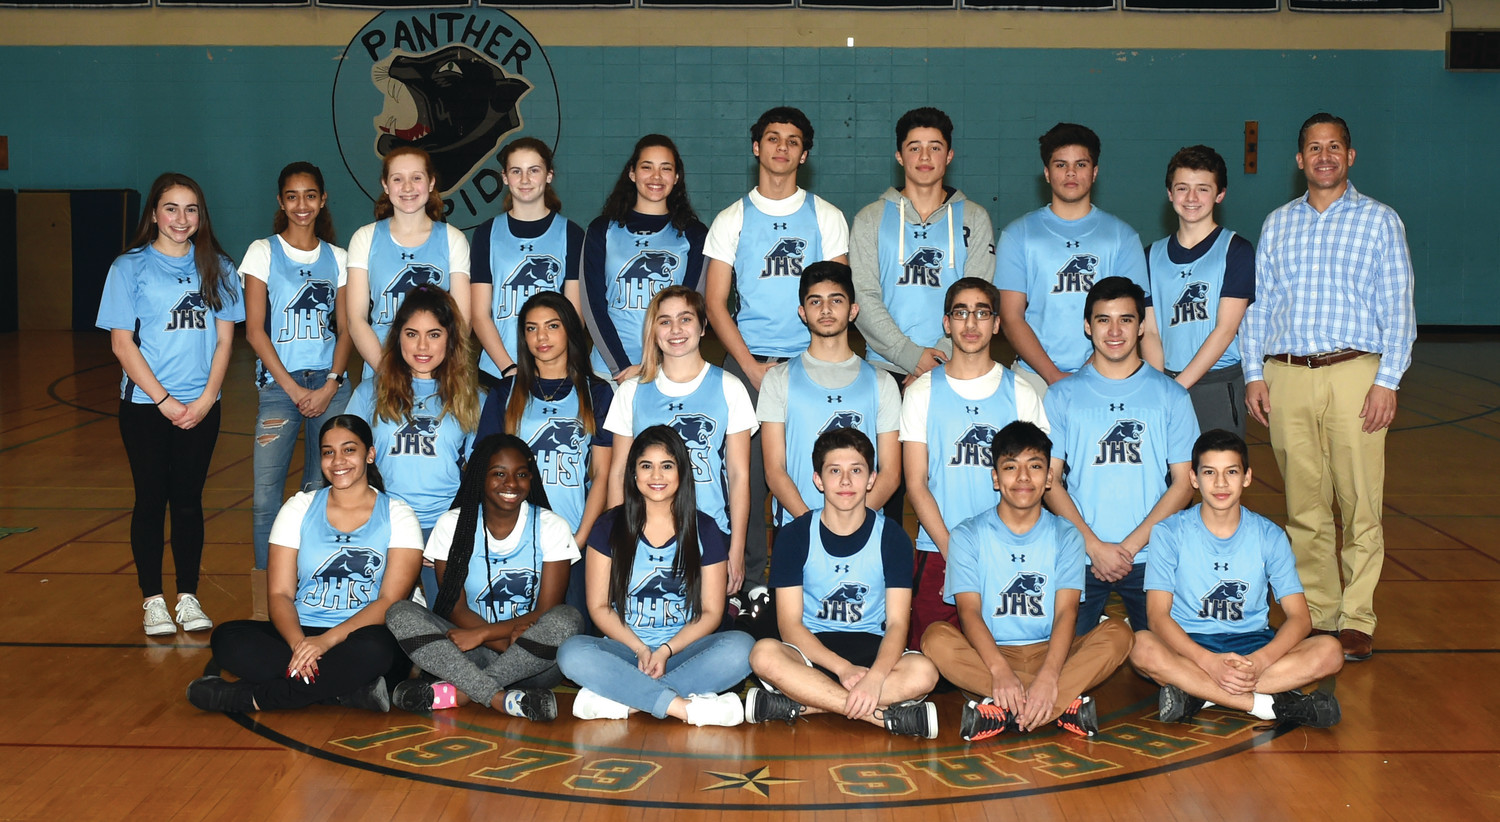 DIMAIO'S DYNAMOS: The first ever JHS coed indoor track and field team includes, sitting in front: Ariel Then, Lala Olagundoye, Linda Carrascoza, Guillermo Hurtado and Jose Echeverria. Middle: Jade Verajano, Jadelin Reyes, Audry Mahony, Kevin Saker, Shaheer Jamil and Carlos Fragoso. Standing: Grace Centracchio, Irissa Jimenez, Melanie Vessella, Brynn Roche, Vanessa Pichardo, Sean Young, Frank Heredia, Andre Pineda, Nick Petrillo and Coach Lou DiMaio. (Submitted photo)